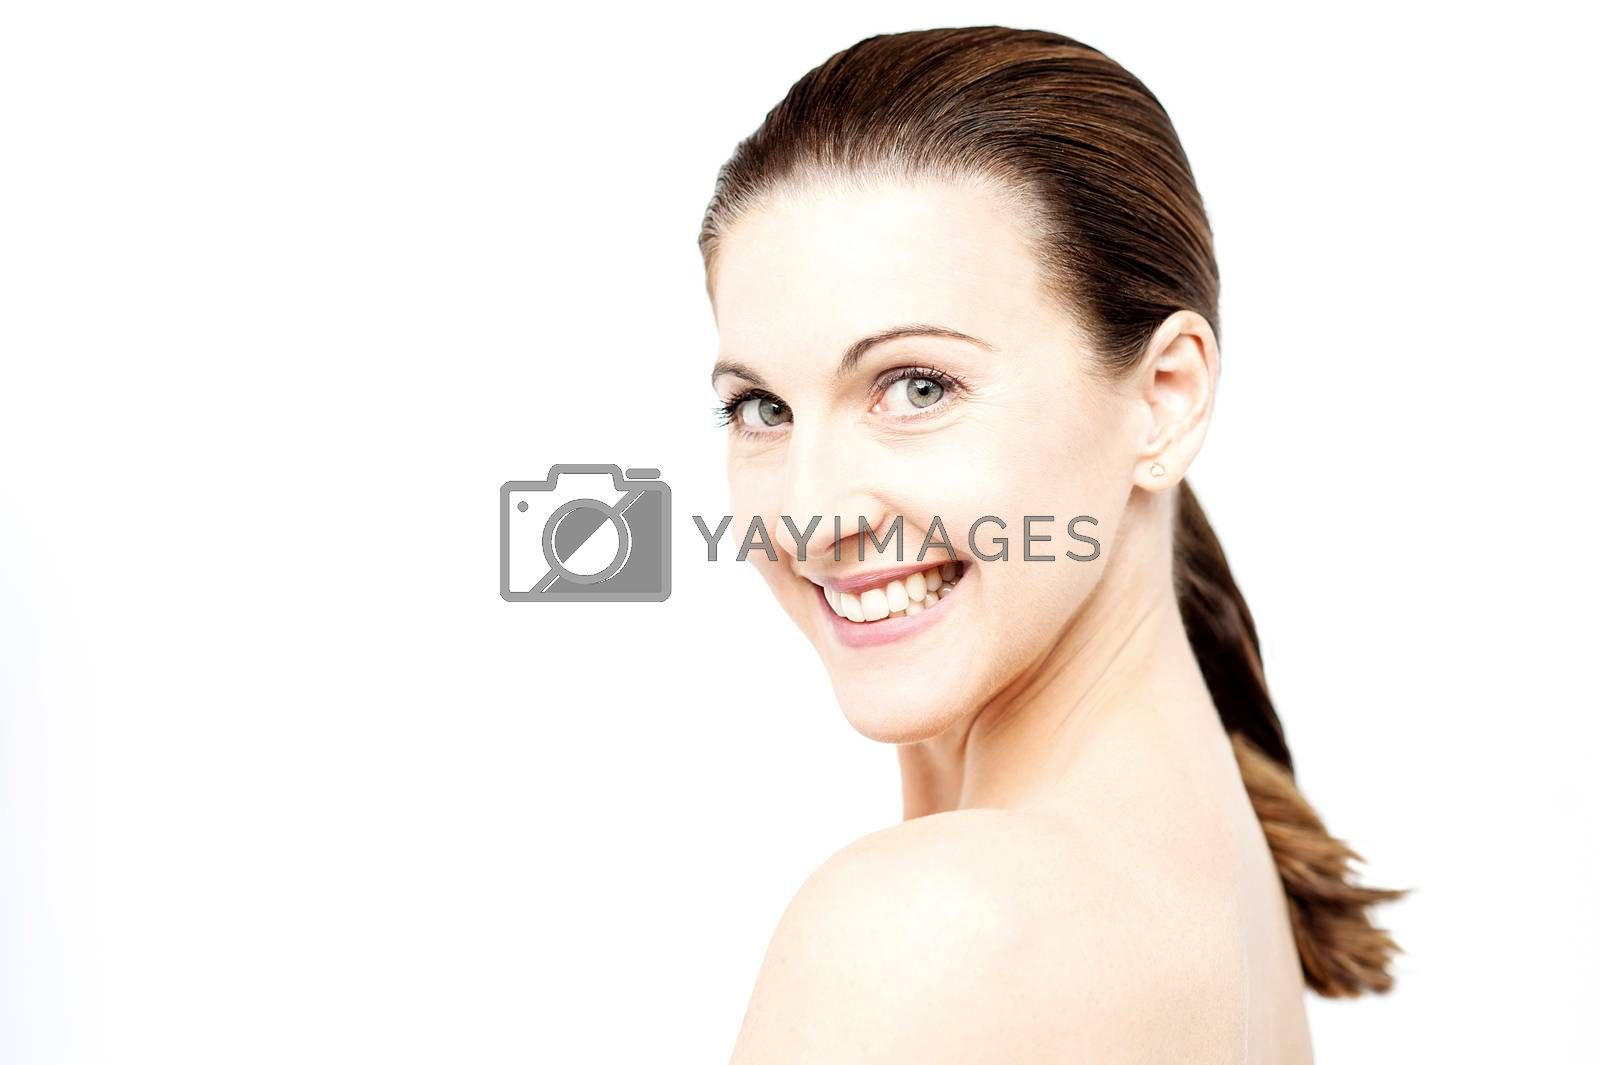 Clsoe up middle aged woman with bare shoulder